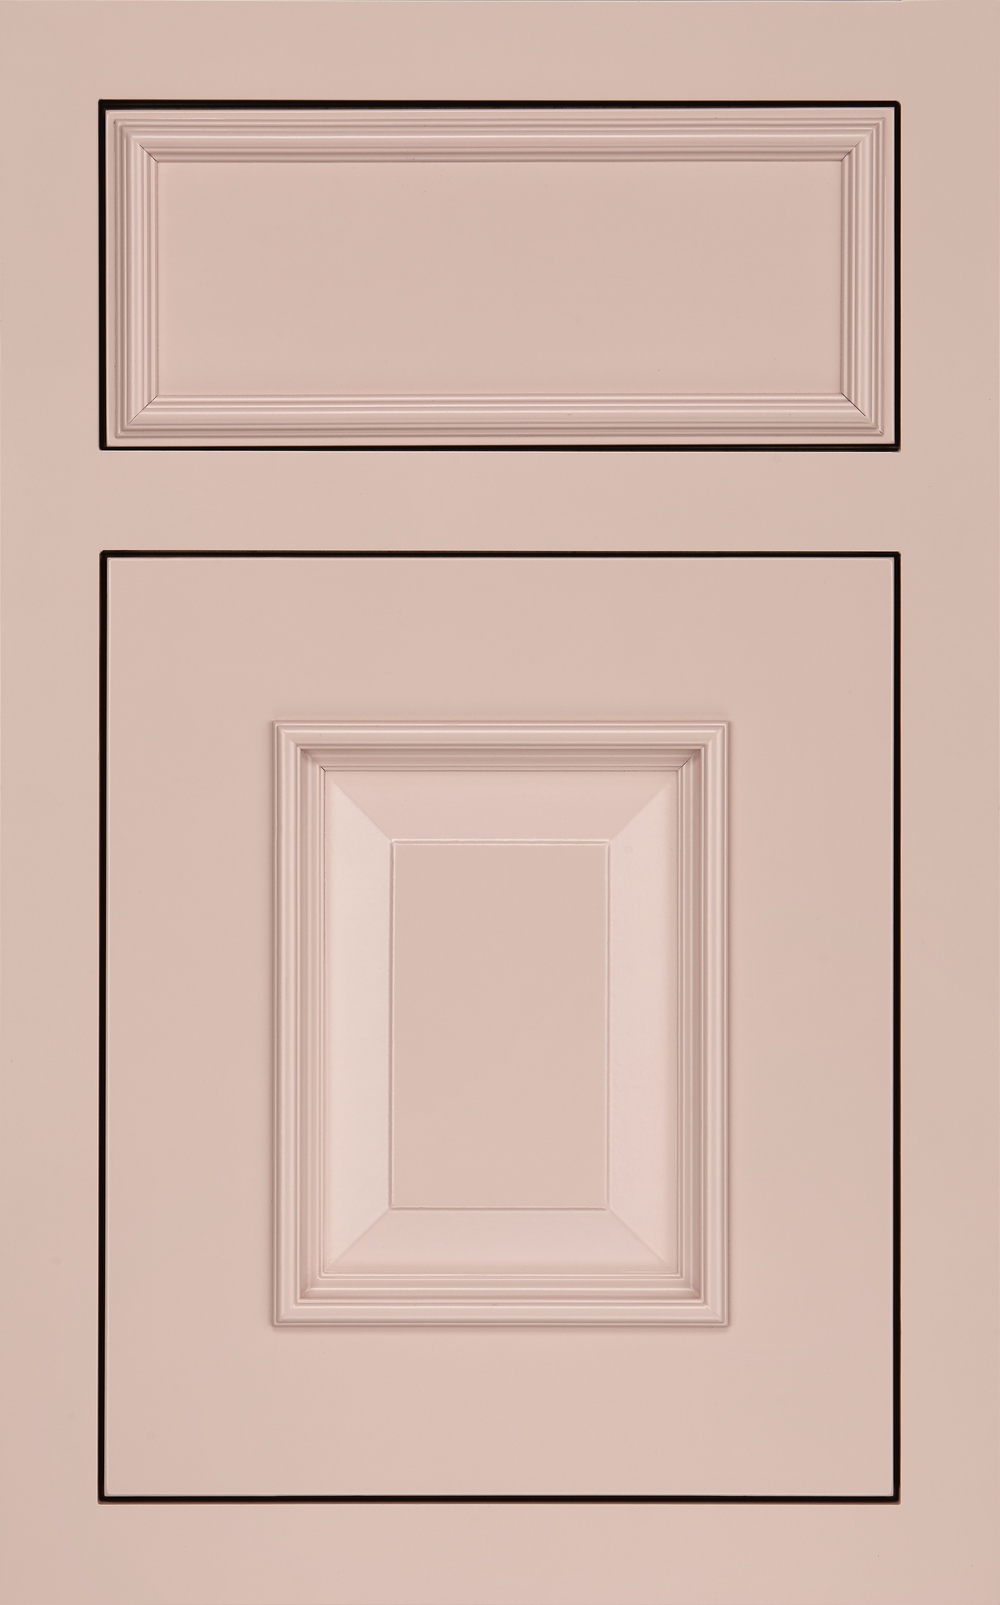 Medallion Cabinetry: Solare Collection, Devonshire Raised Panel Door in Maple with Blush Finish